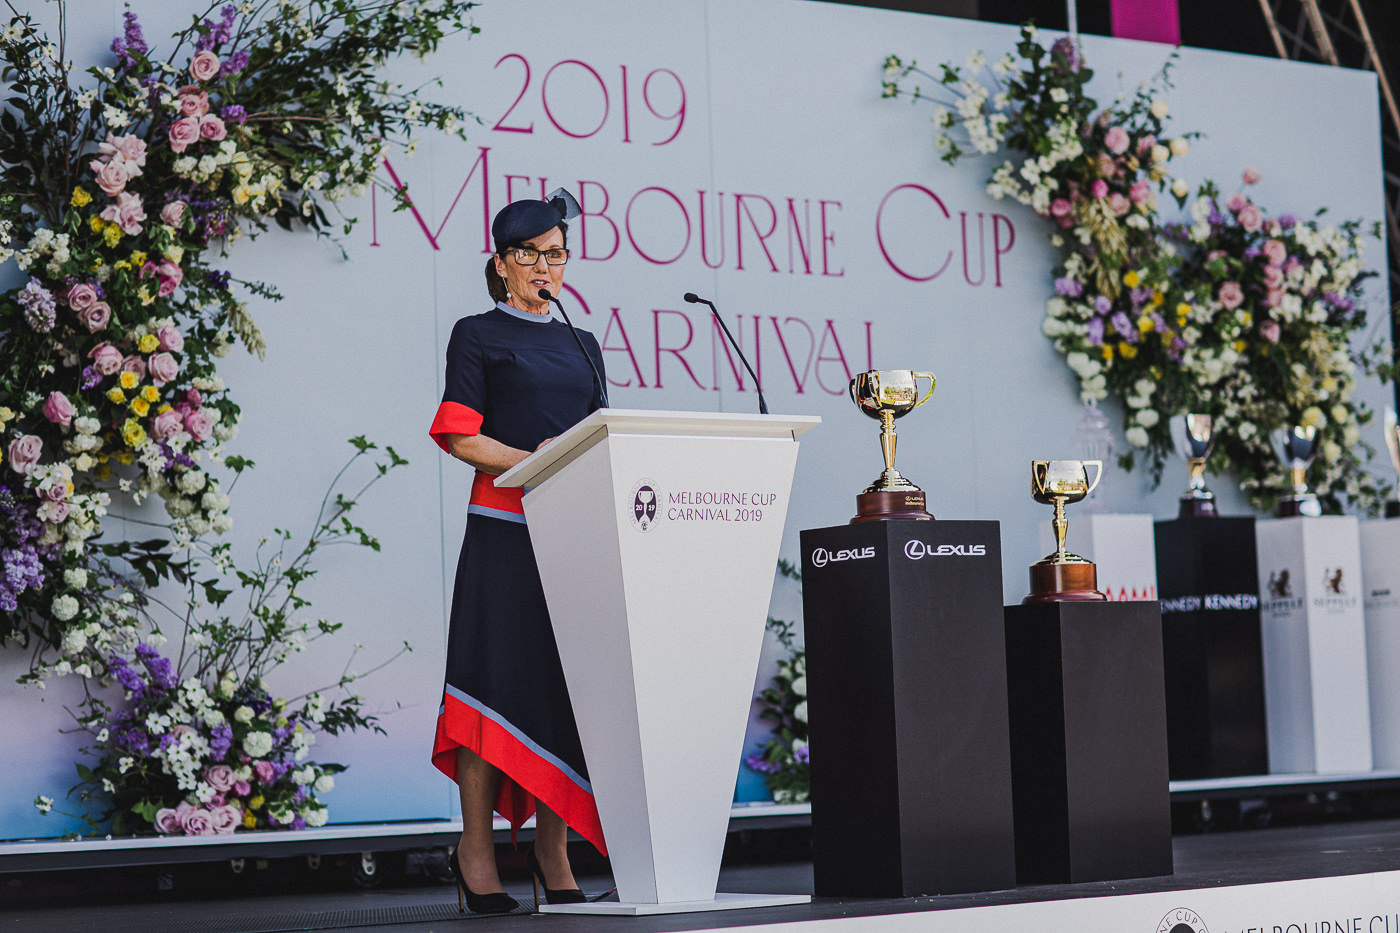 VRC Chairman Amanda Elliott, as the VRC celebrates the 100th anniversary of the three-handled Melbourne Cup trophy. 1919 and 2019